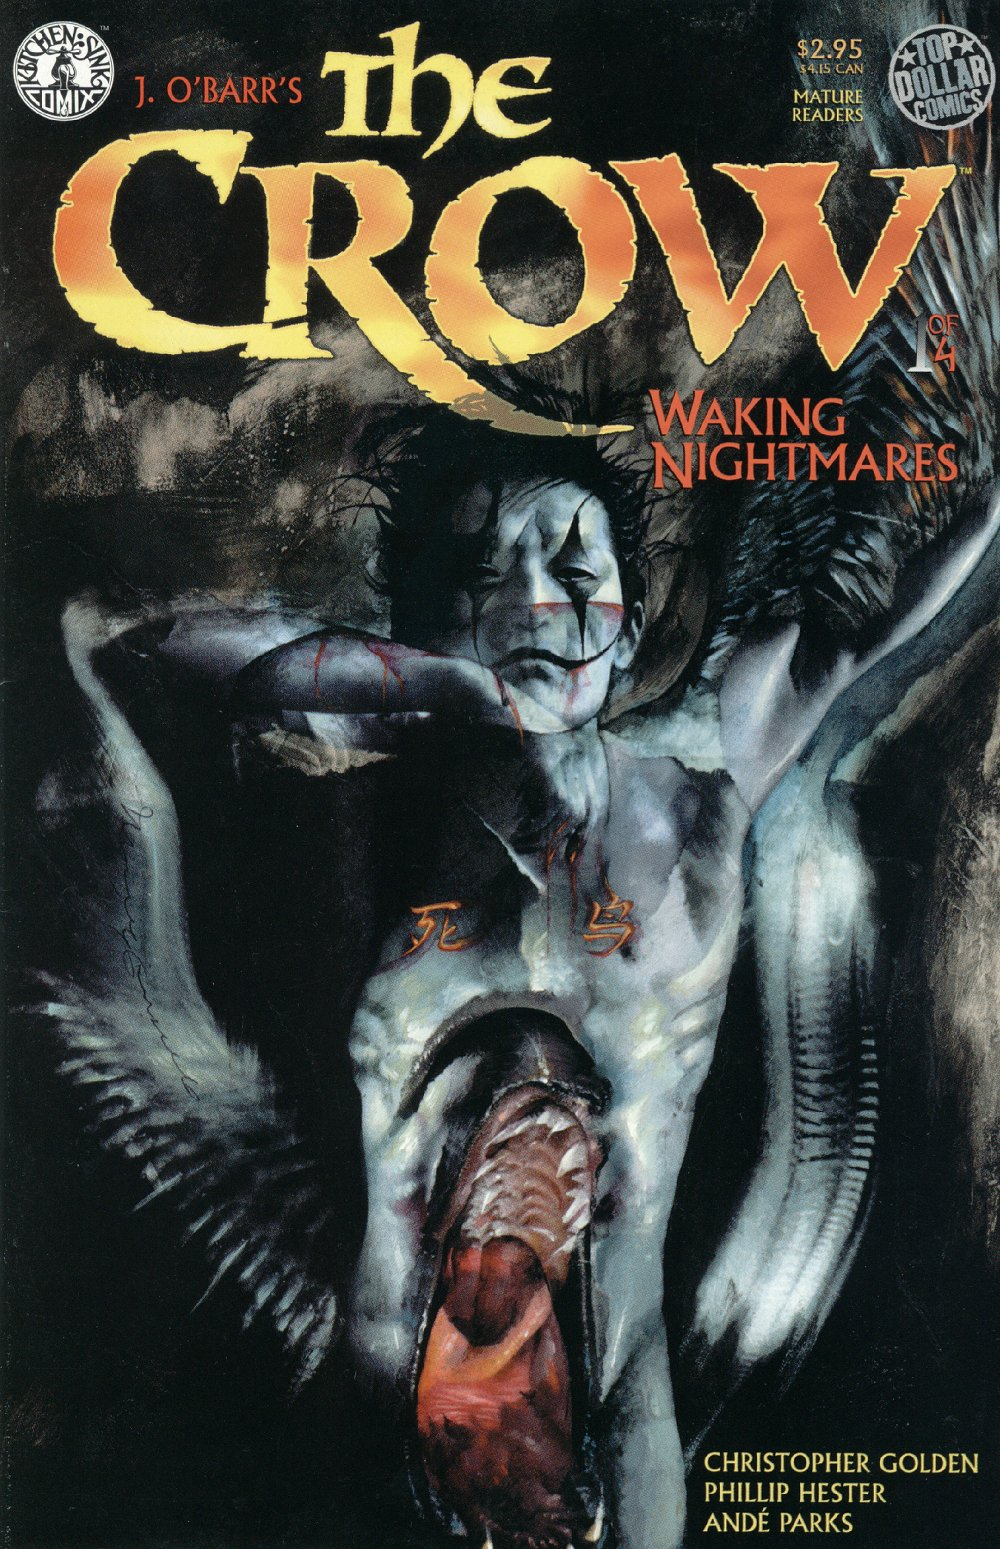 1 The Magician On Pinterest: The Crow – Waking Nightmares # 1, 1997